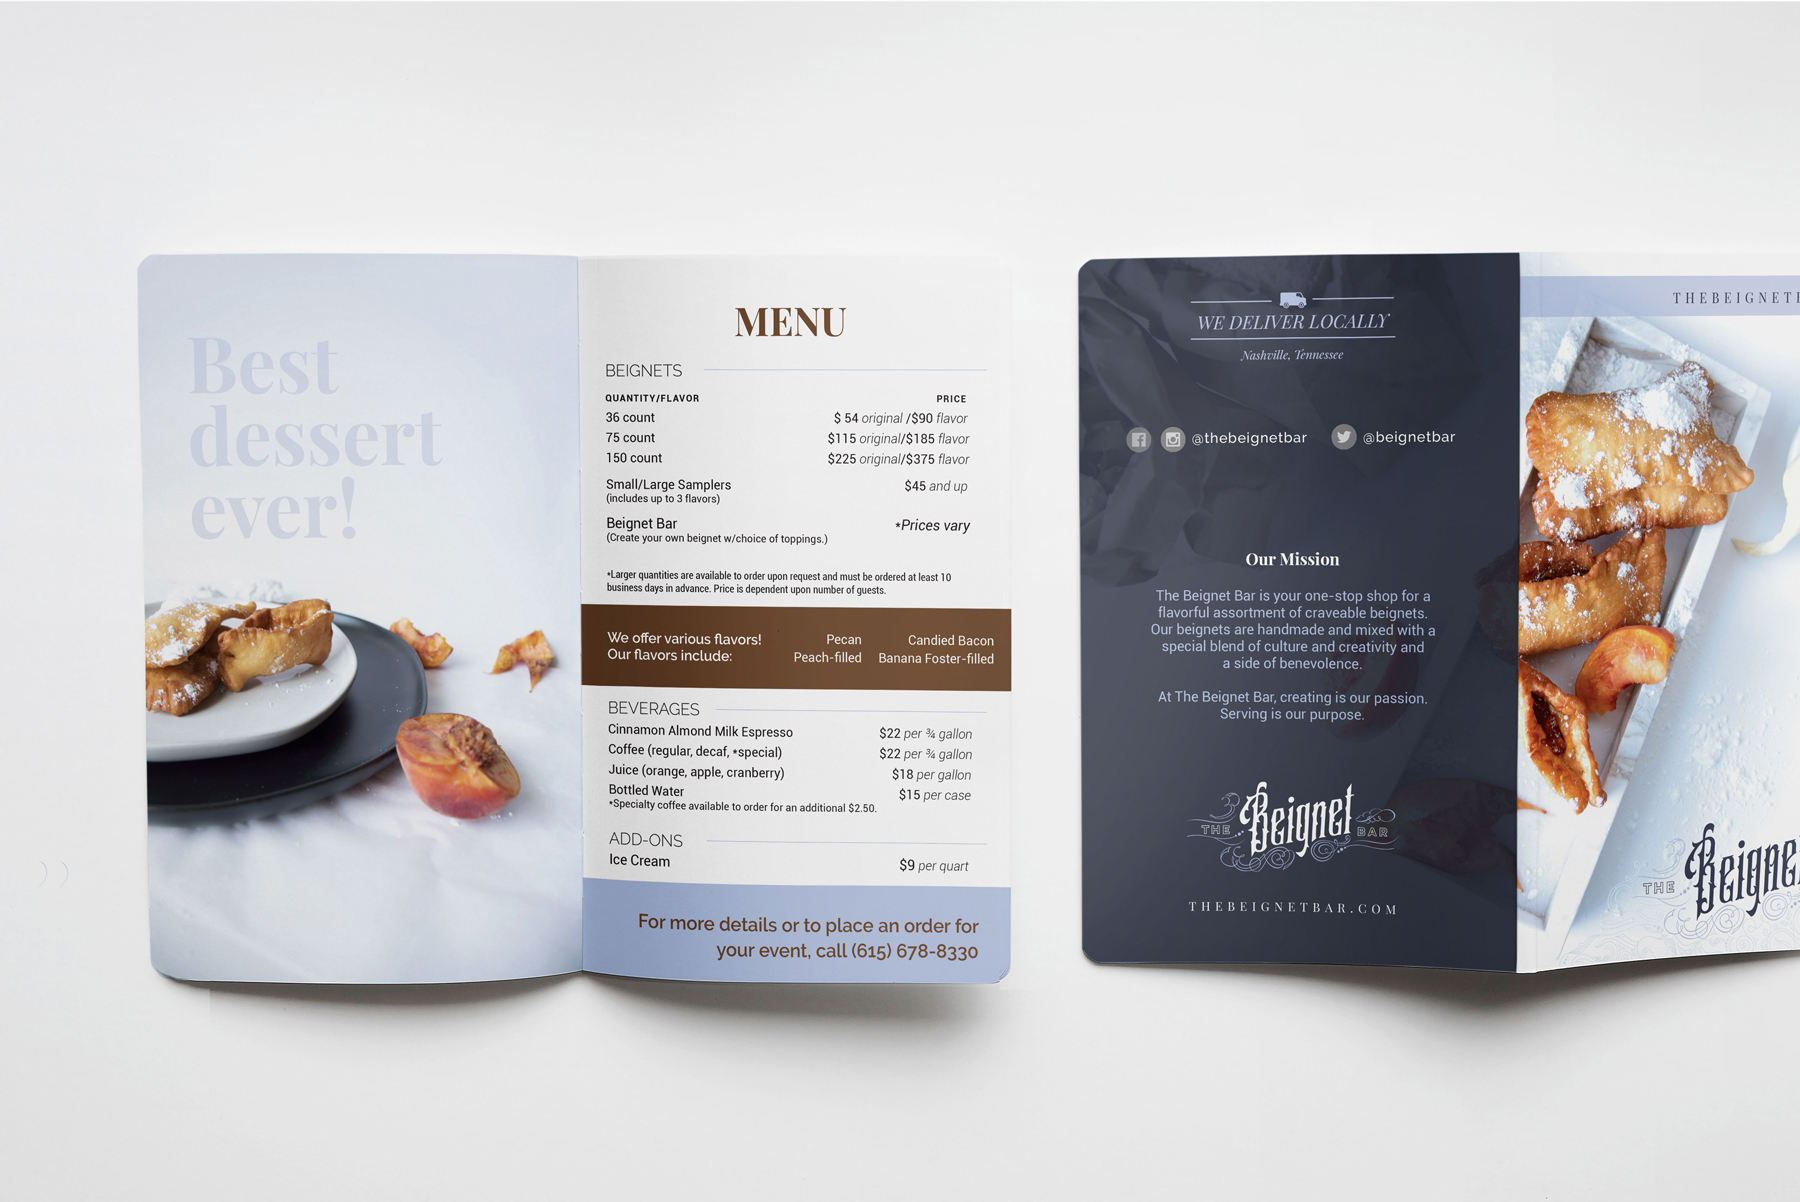 The Beignet Bar Brochure designed by Hire Henri Creative in Chicago Illinois